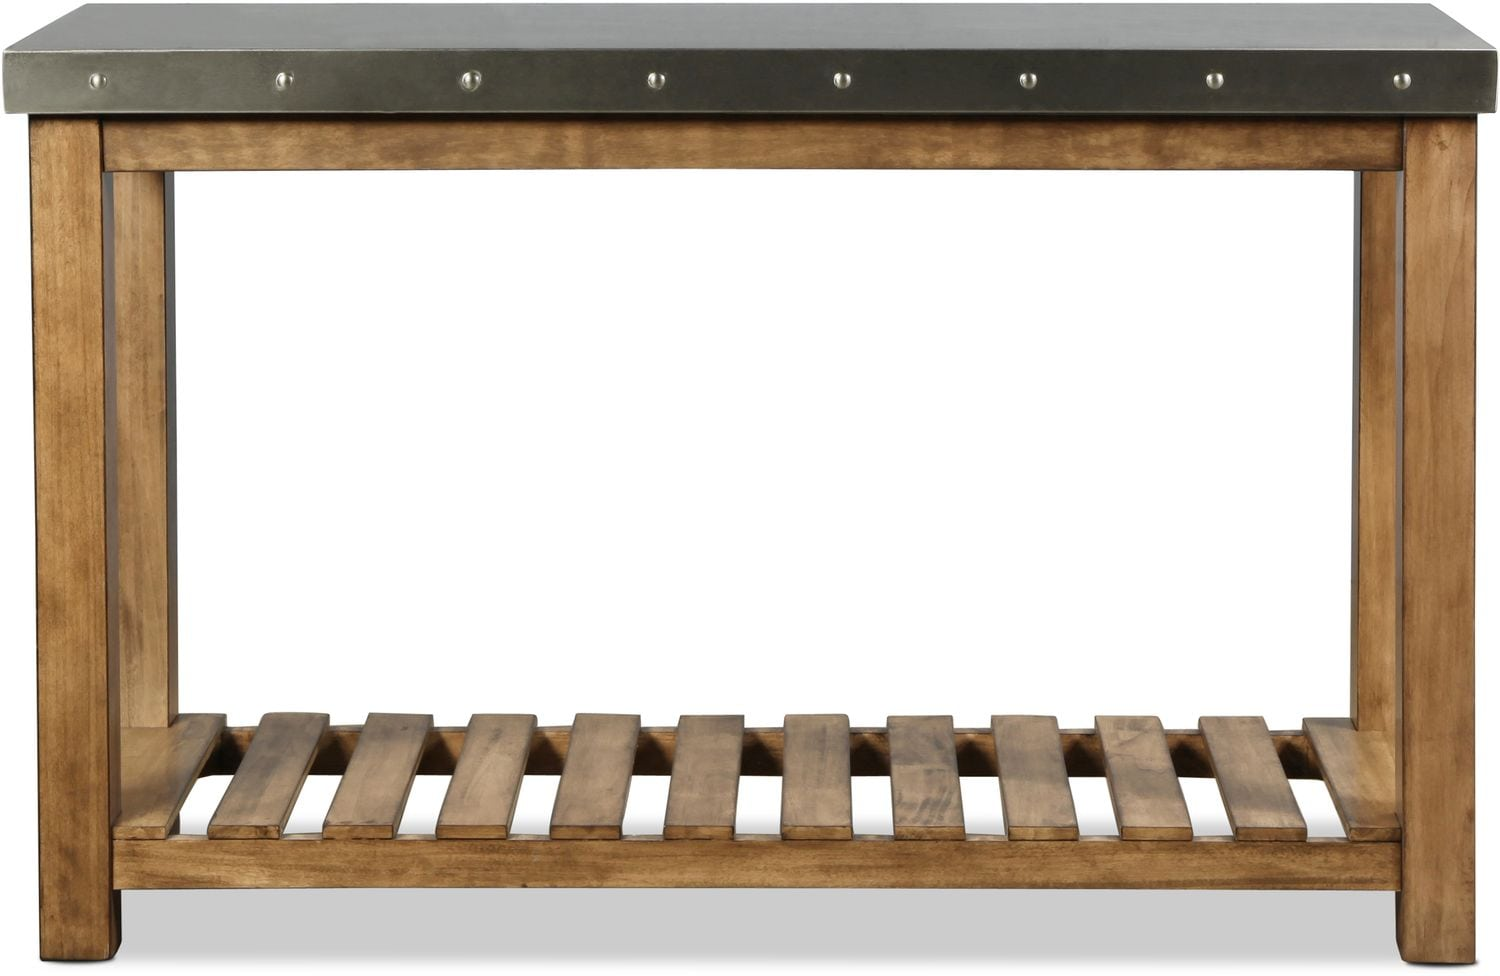 Accent and Occasional Furniture - Allegro Sofa Table - Weathered Wood with Metal